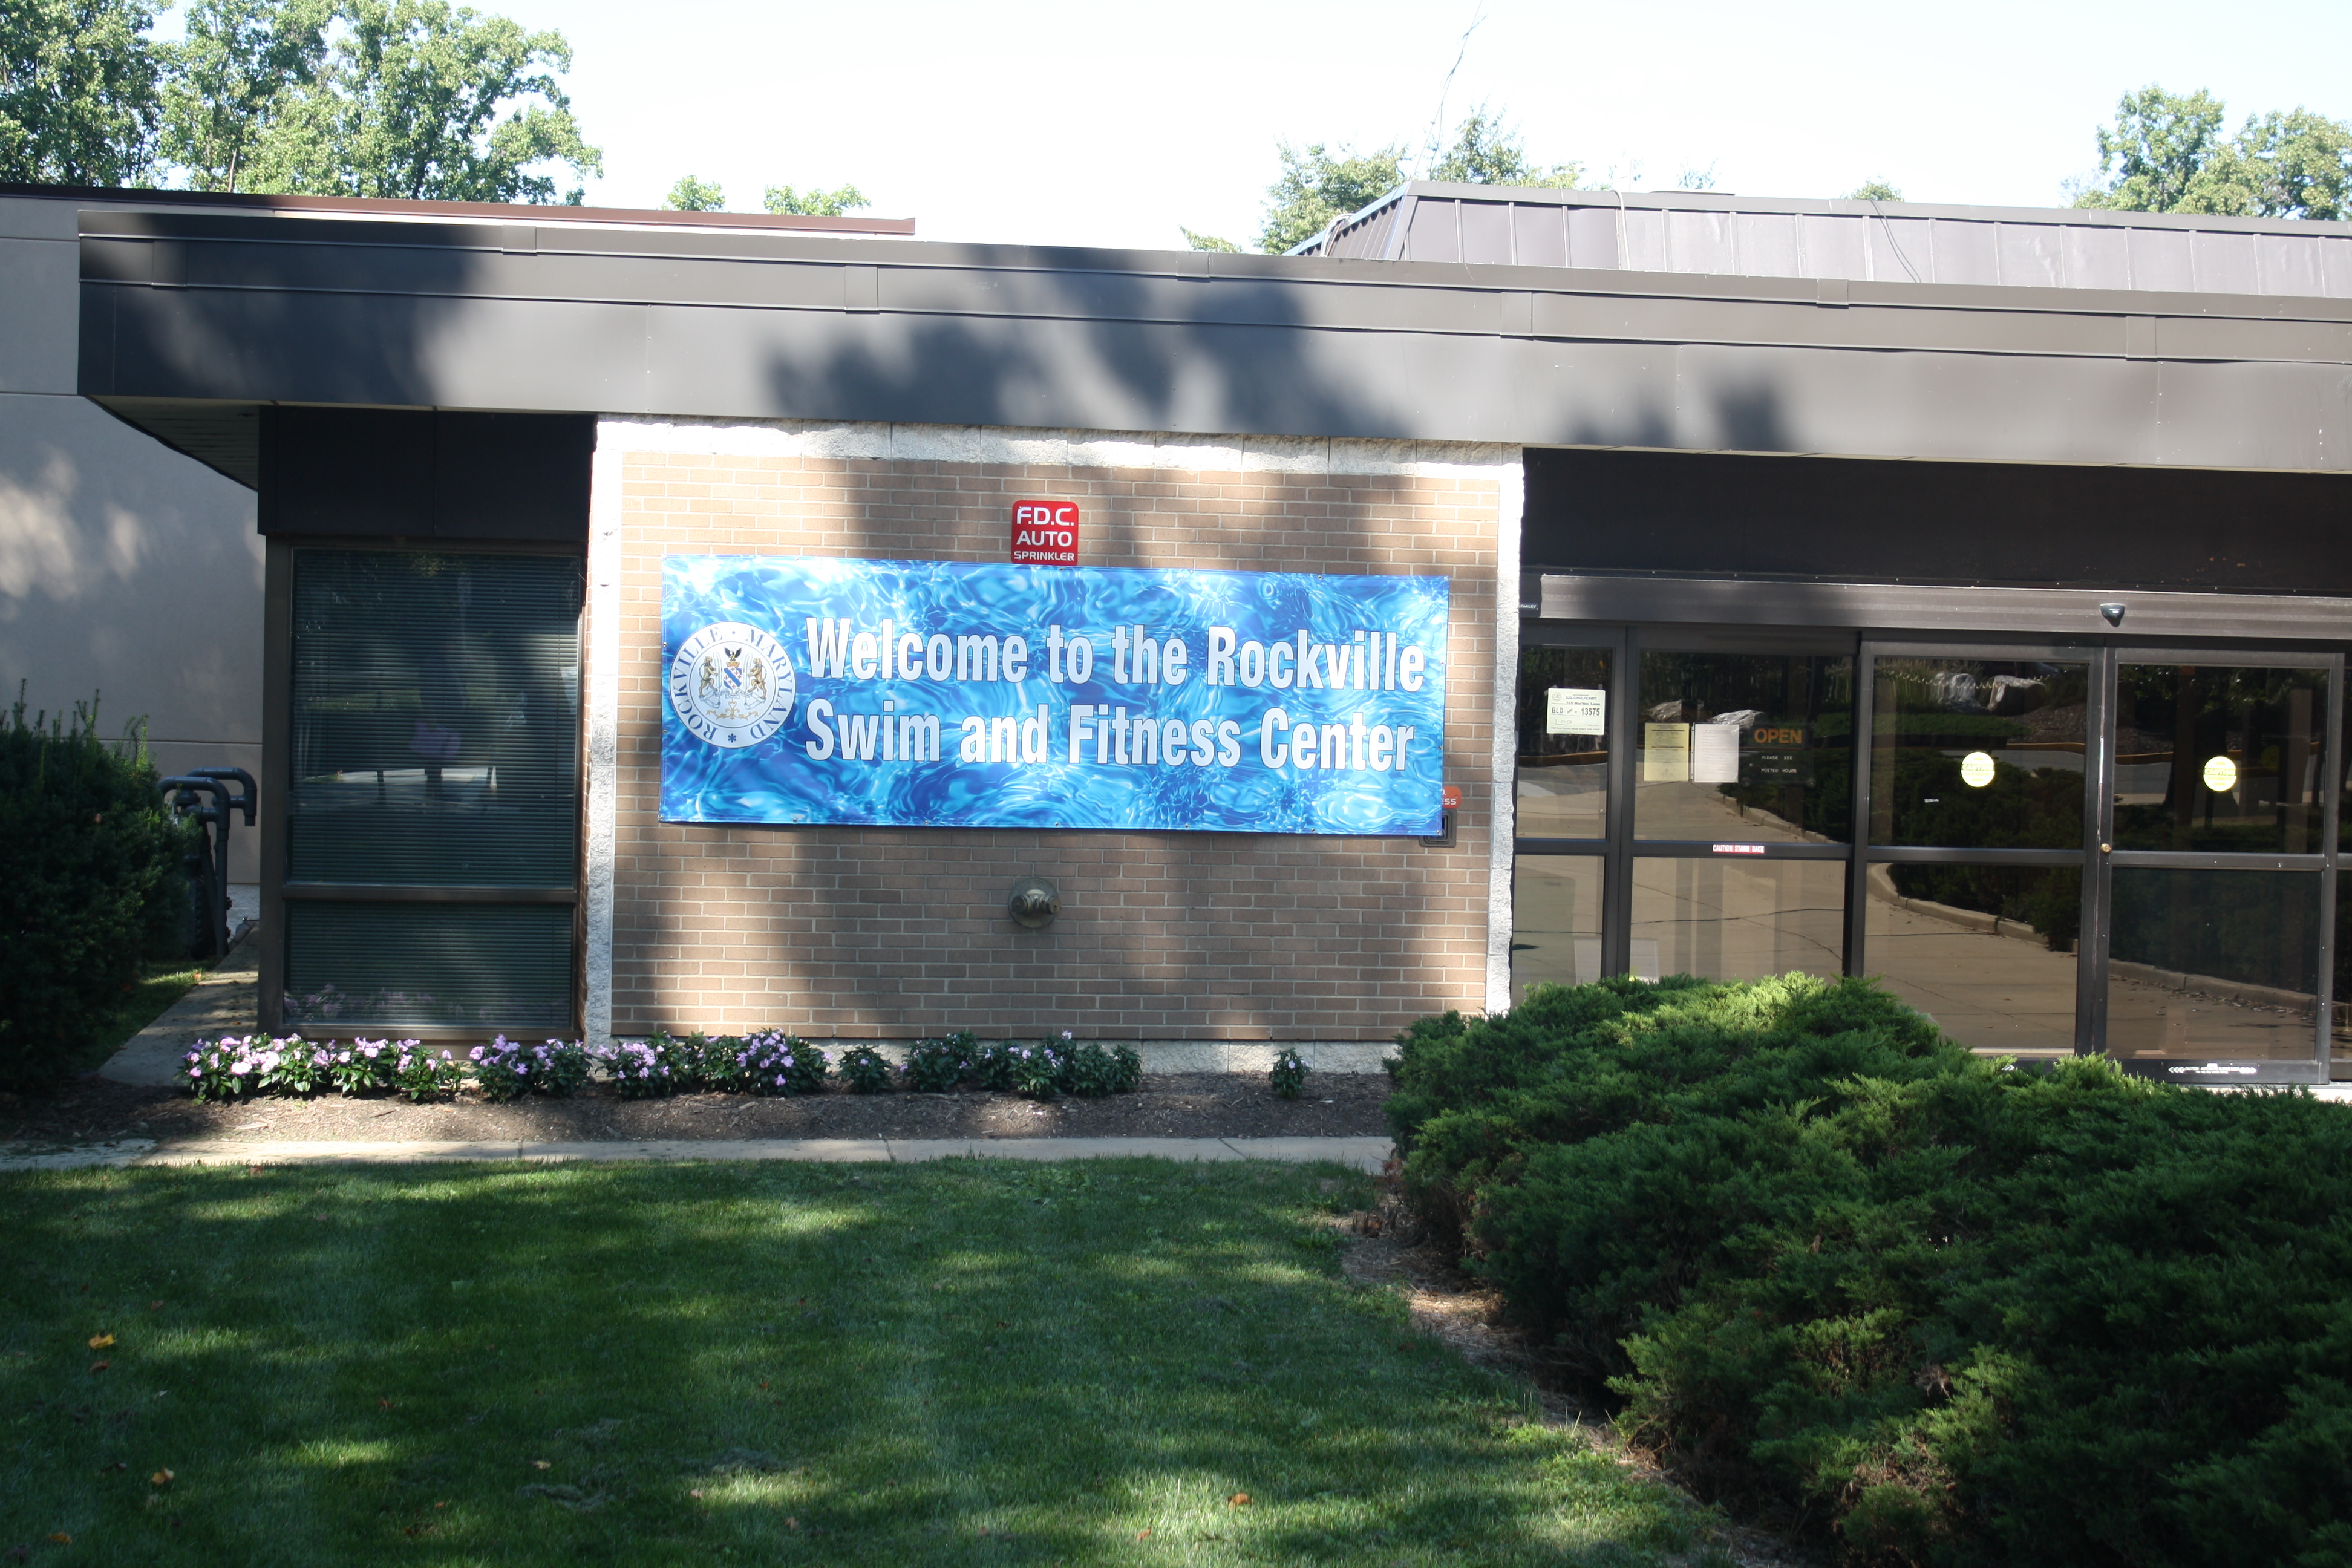 Outside of a brick building with a banner reading Rockville Swim and Fitness Center